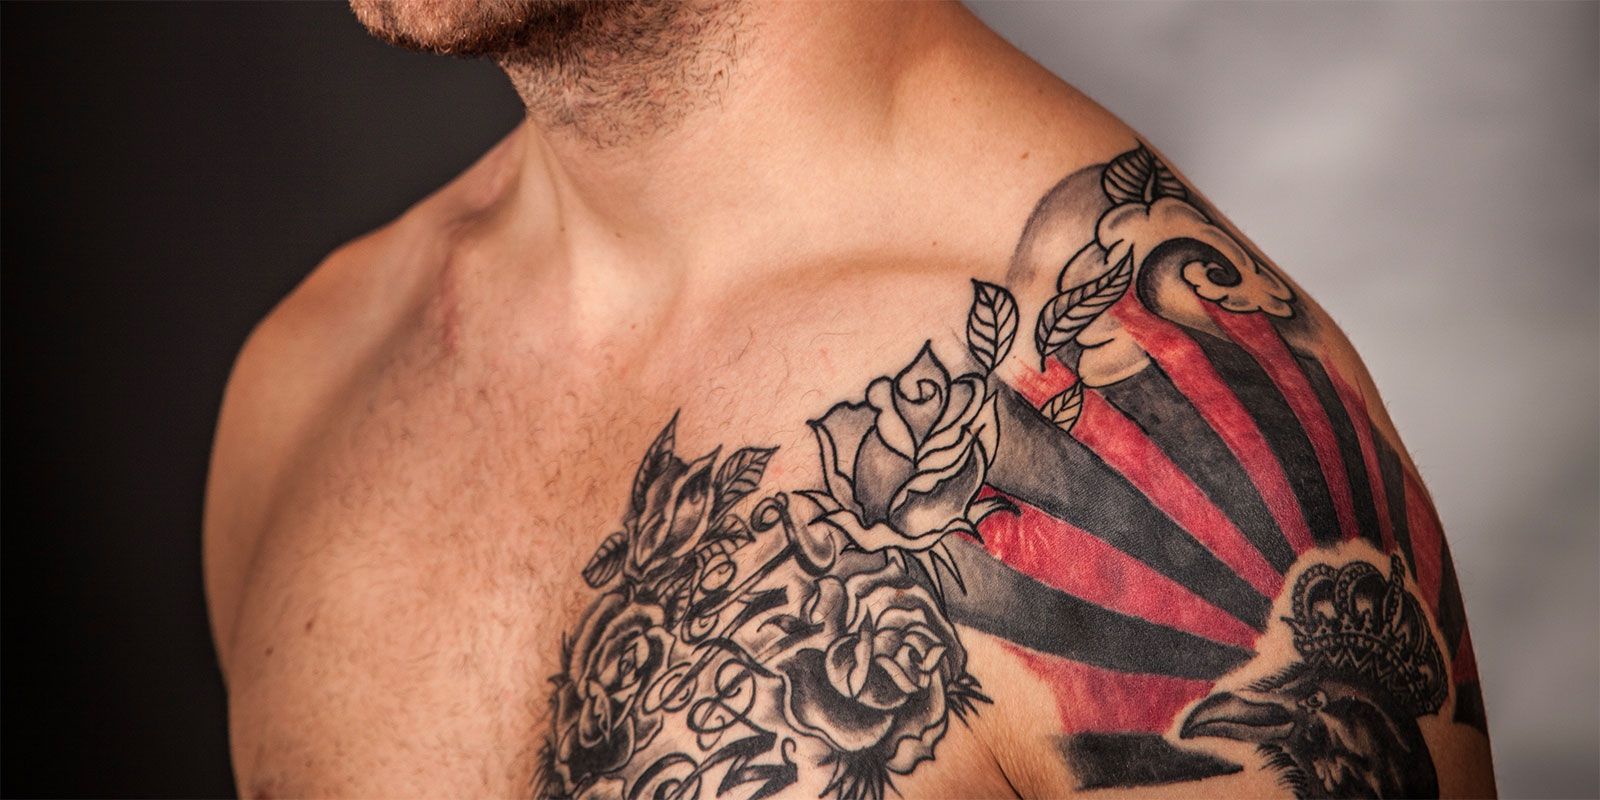 11 tattoos people regret getting the most for Qualifications for tattoo removal